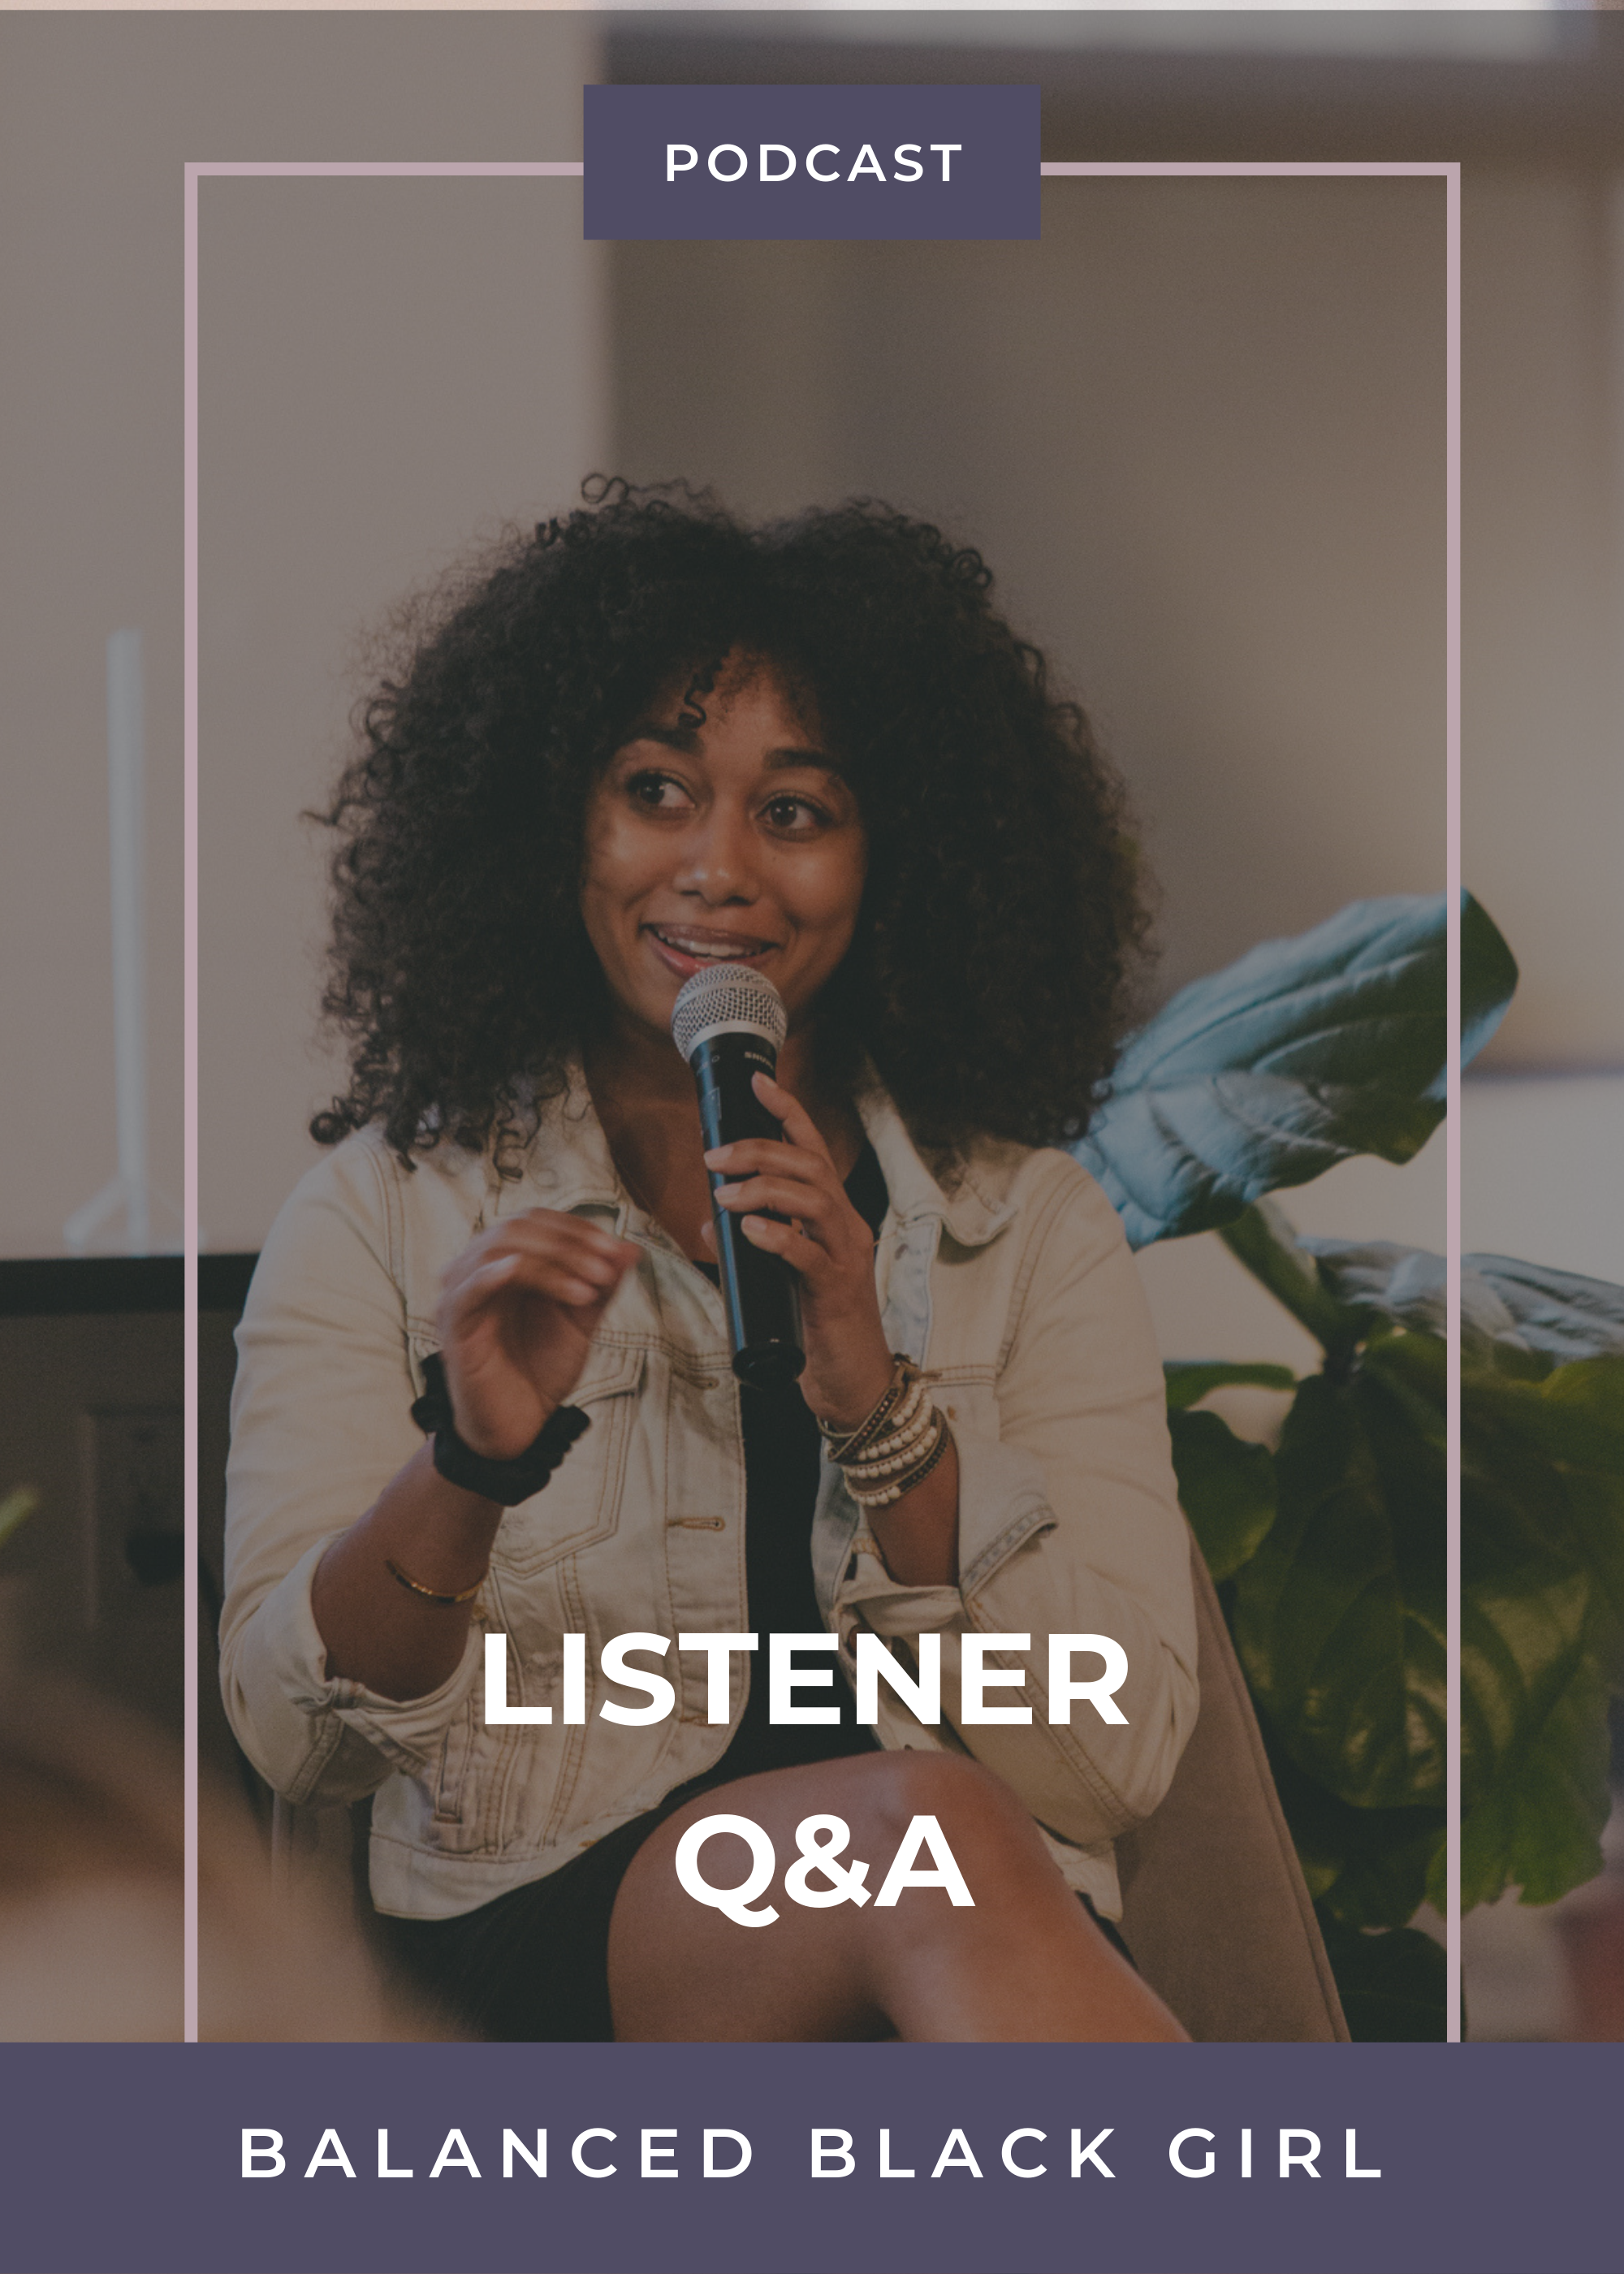 Episode 38: Listener Q&A | Balanced Black Girl Podcast